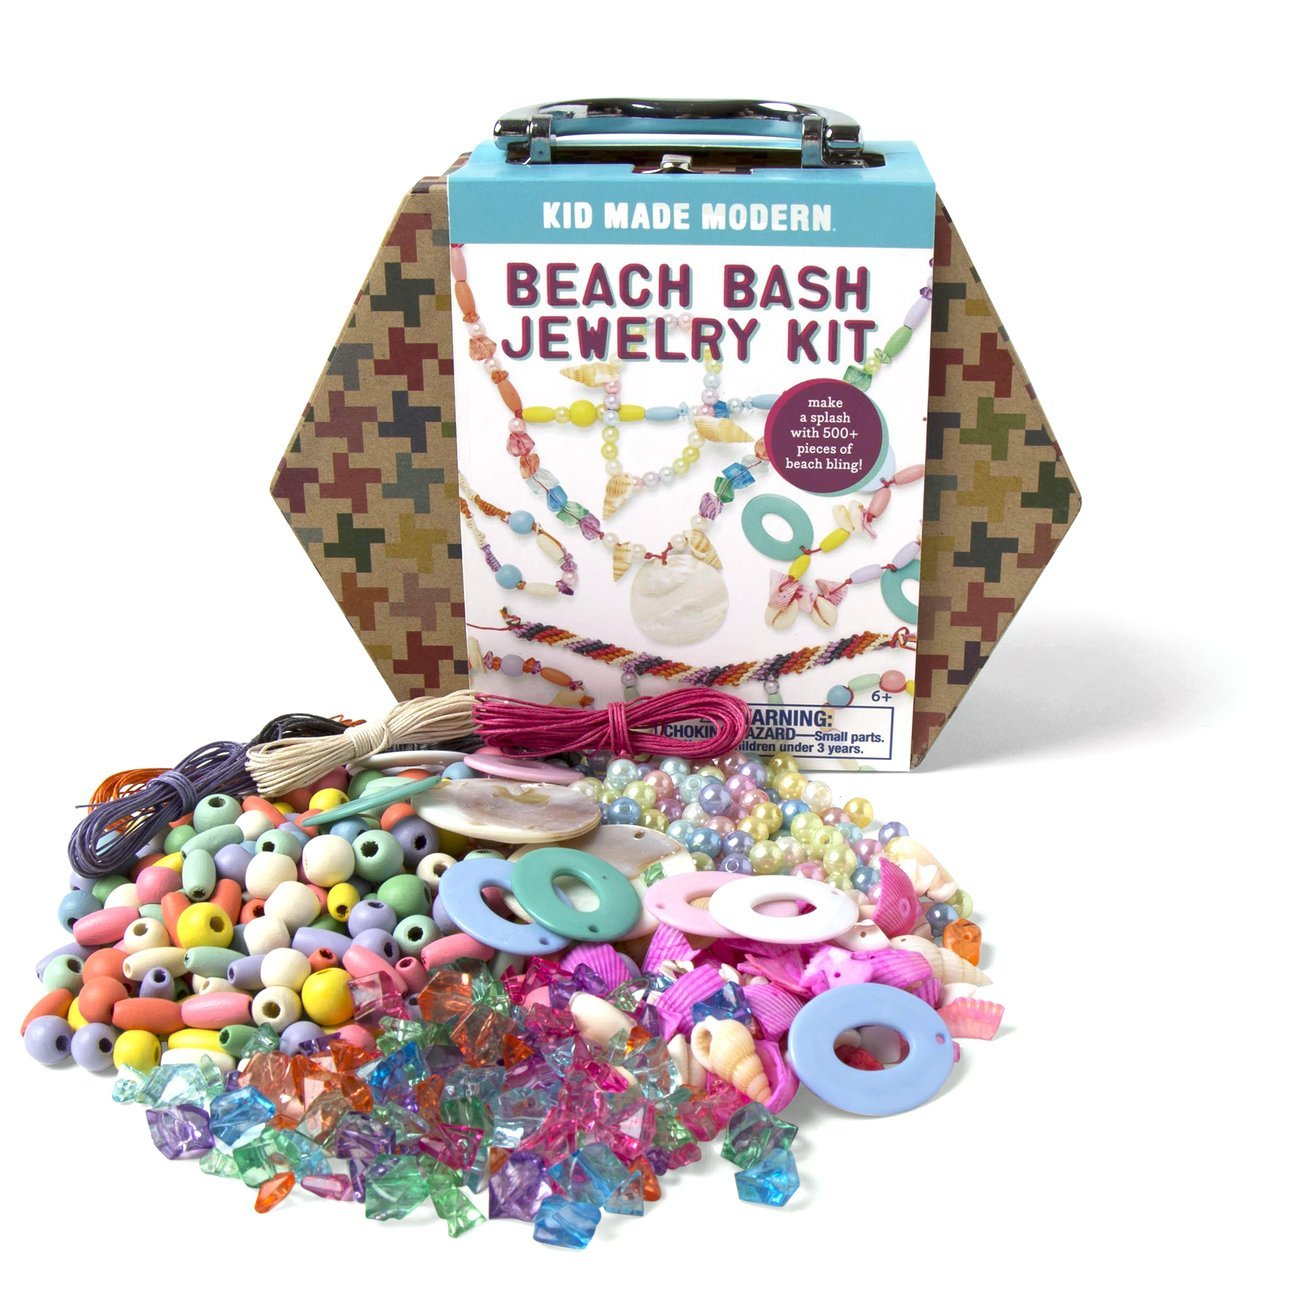 Kid Made Modern Beach Bash Kids Jewelry Making Kit - Arts & Crafts Toys